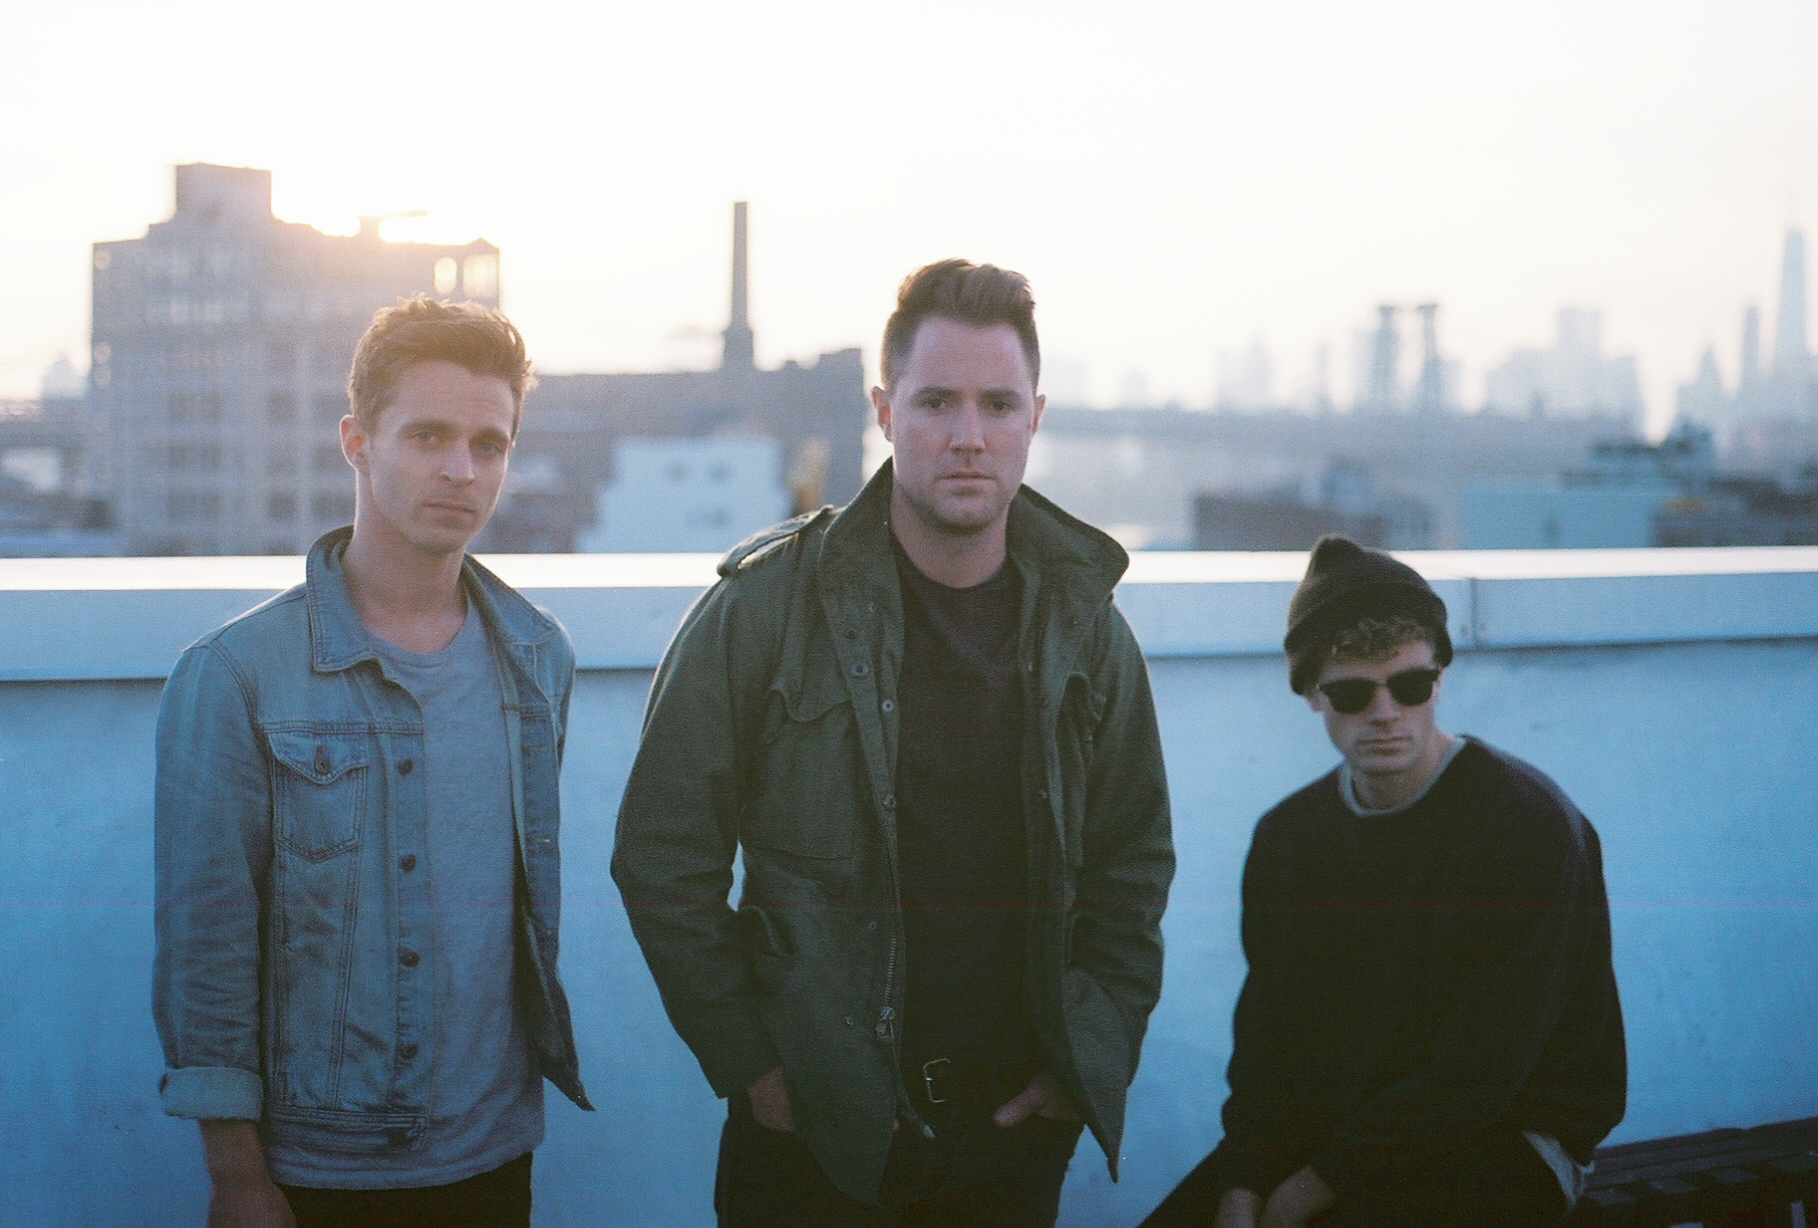 Wild Cub's 'Closer' is uneven, but at its best when it embraces its fun